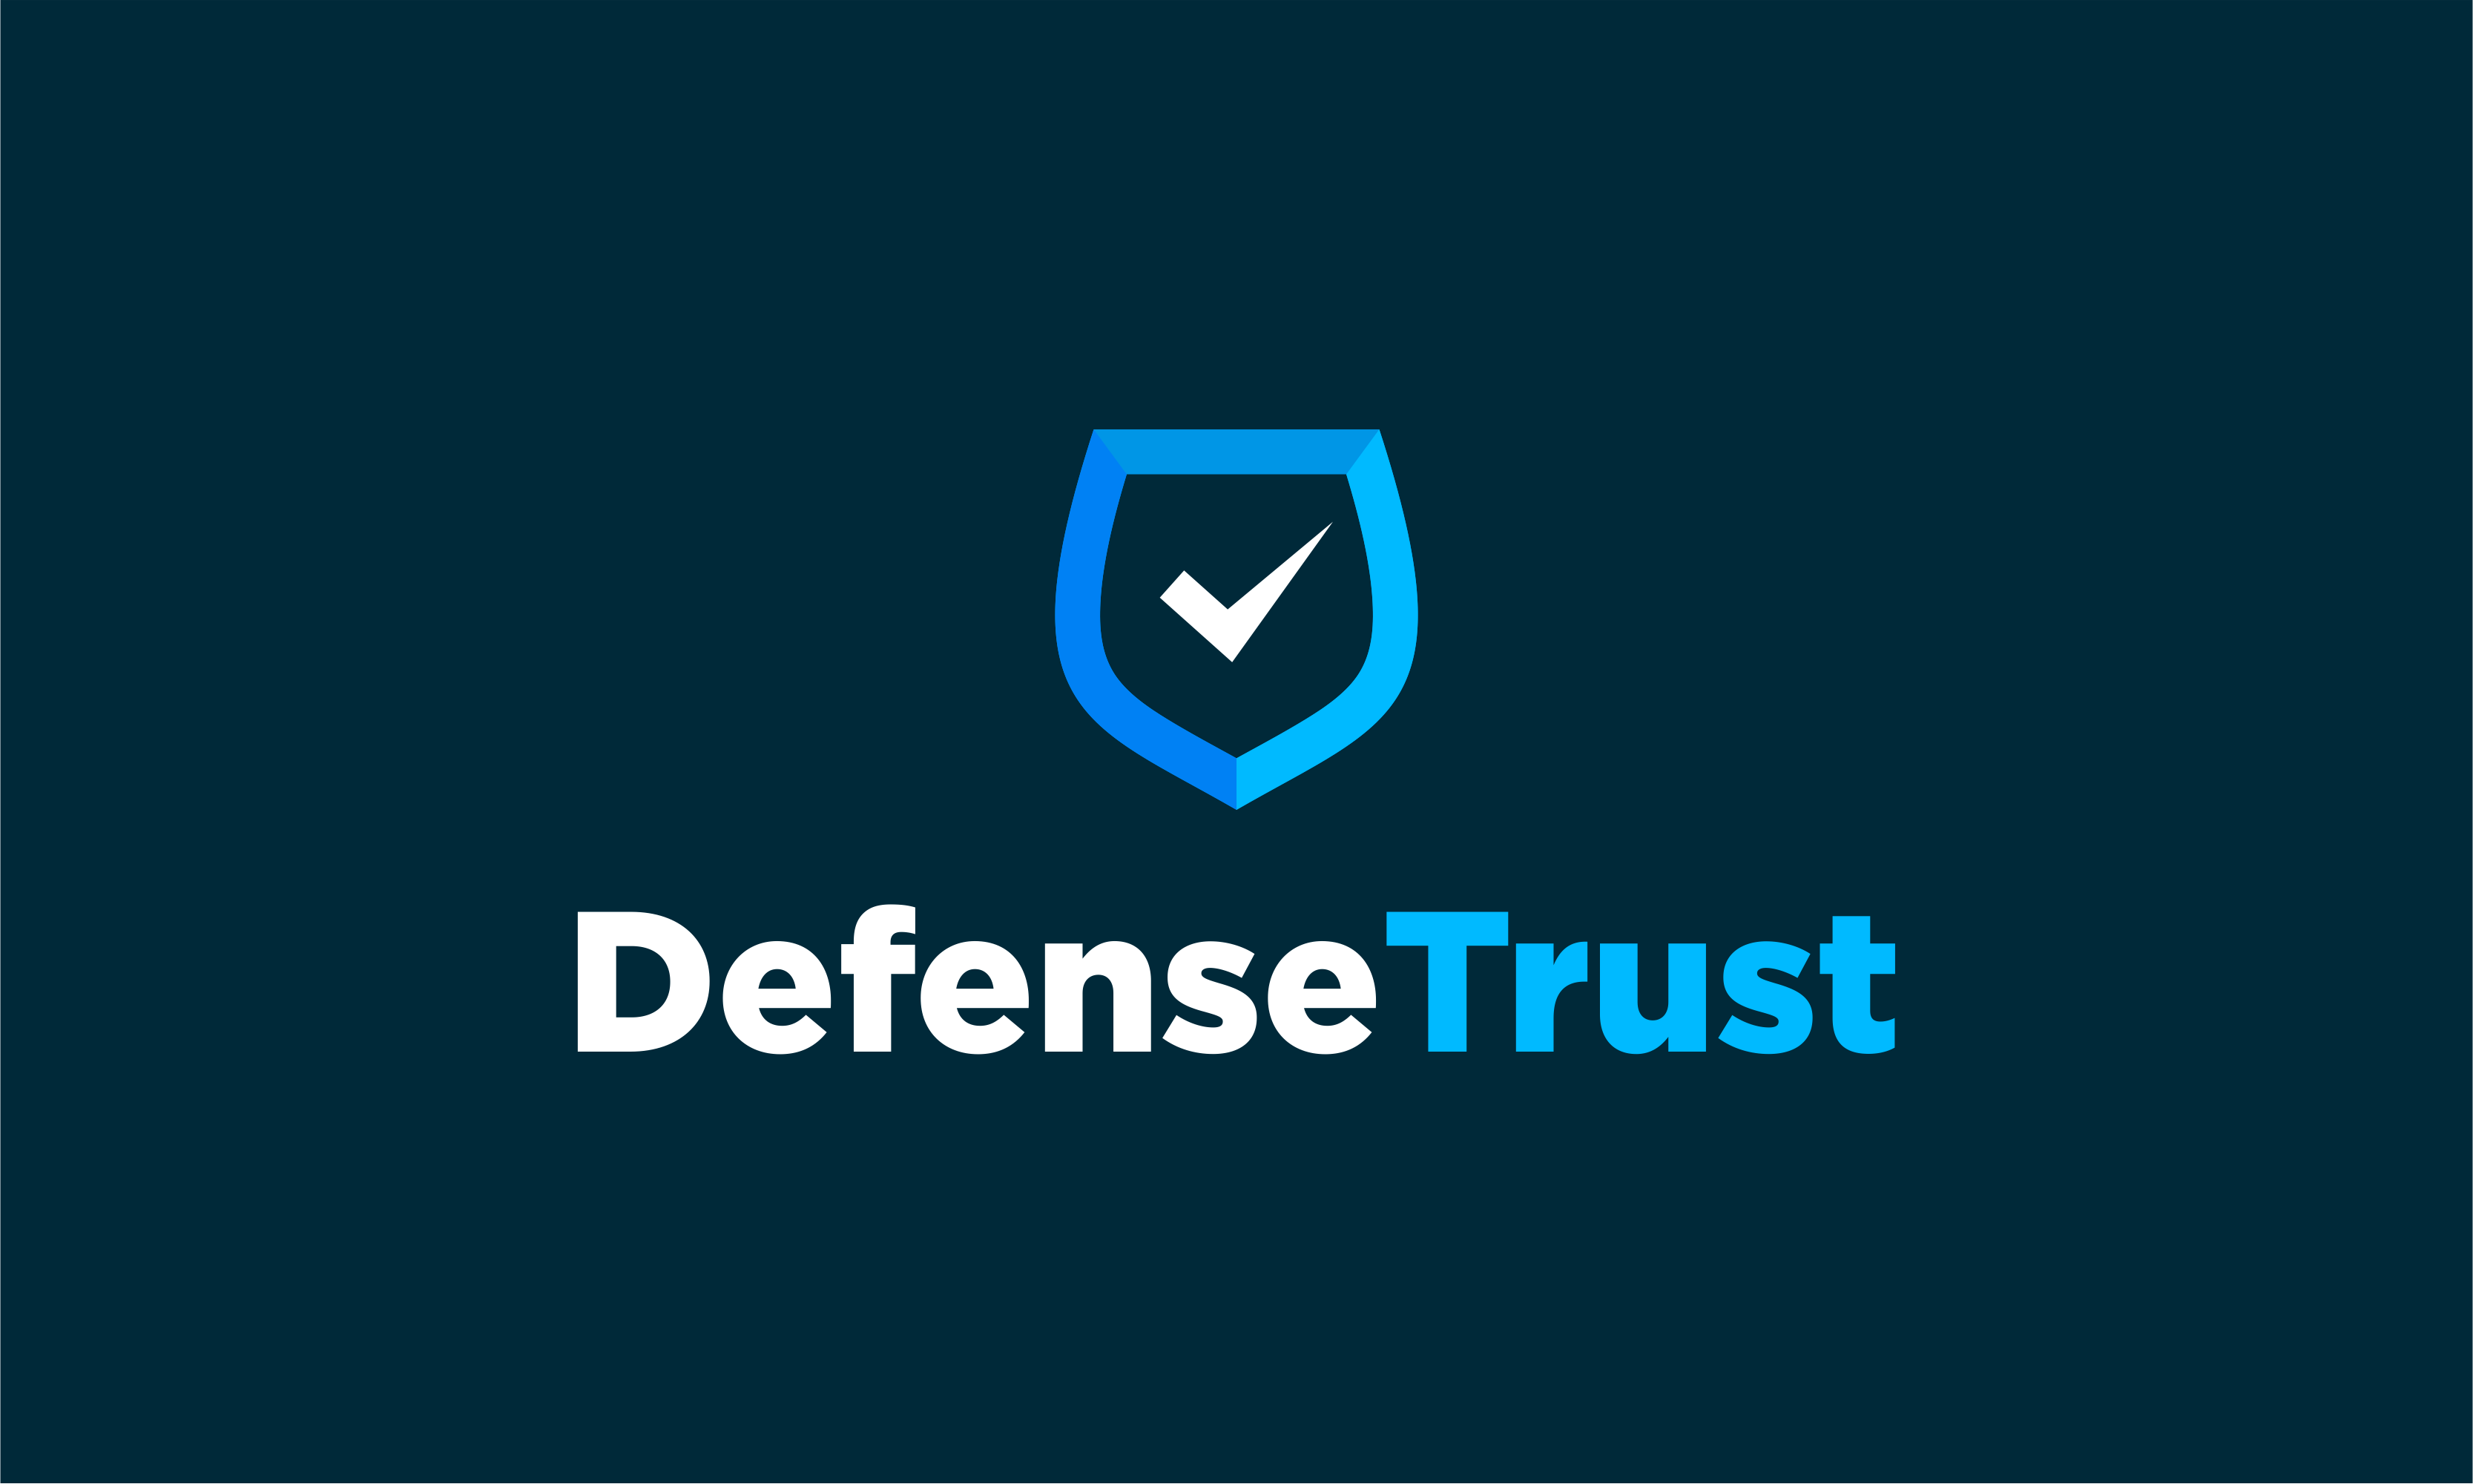 Defensetrust